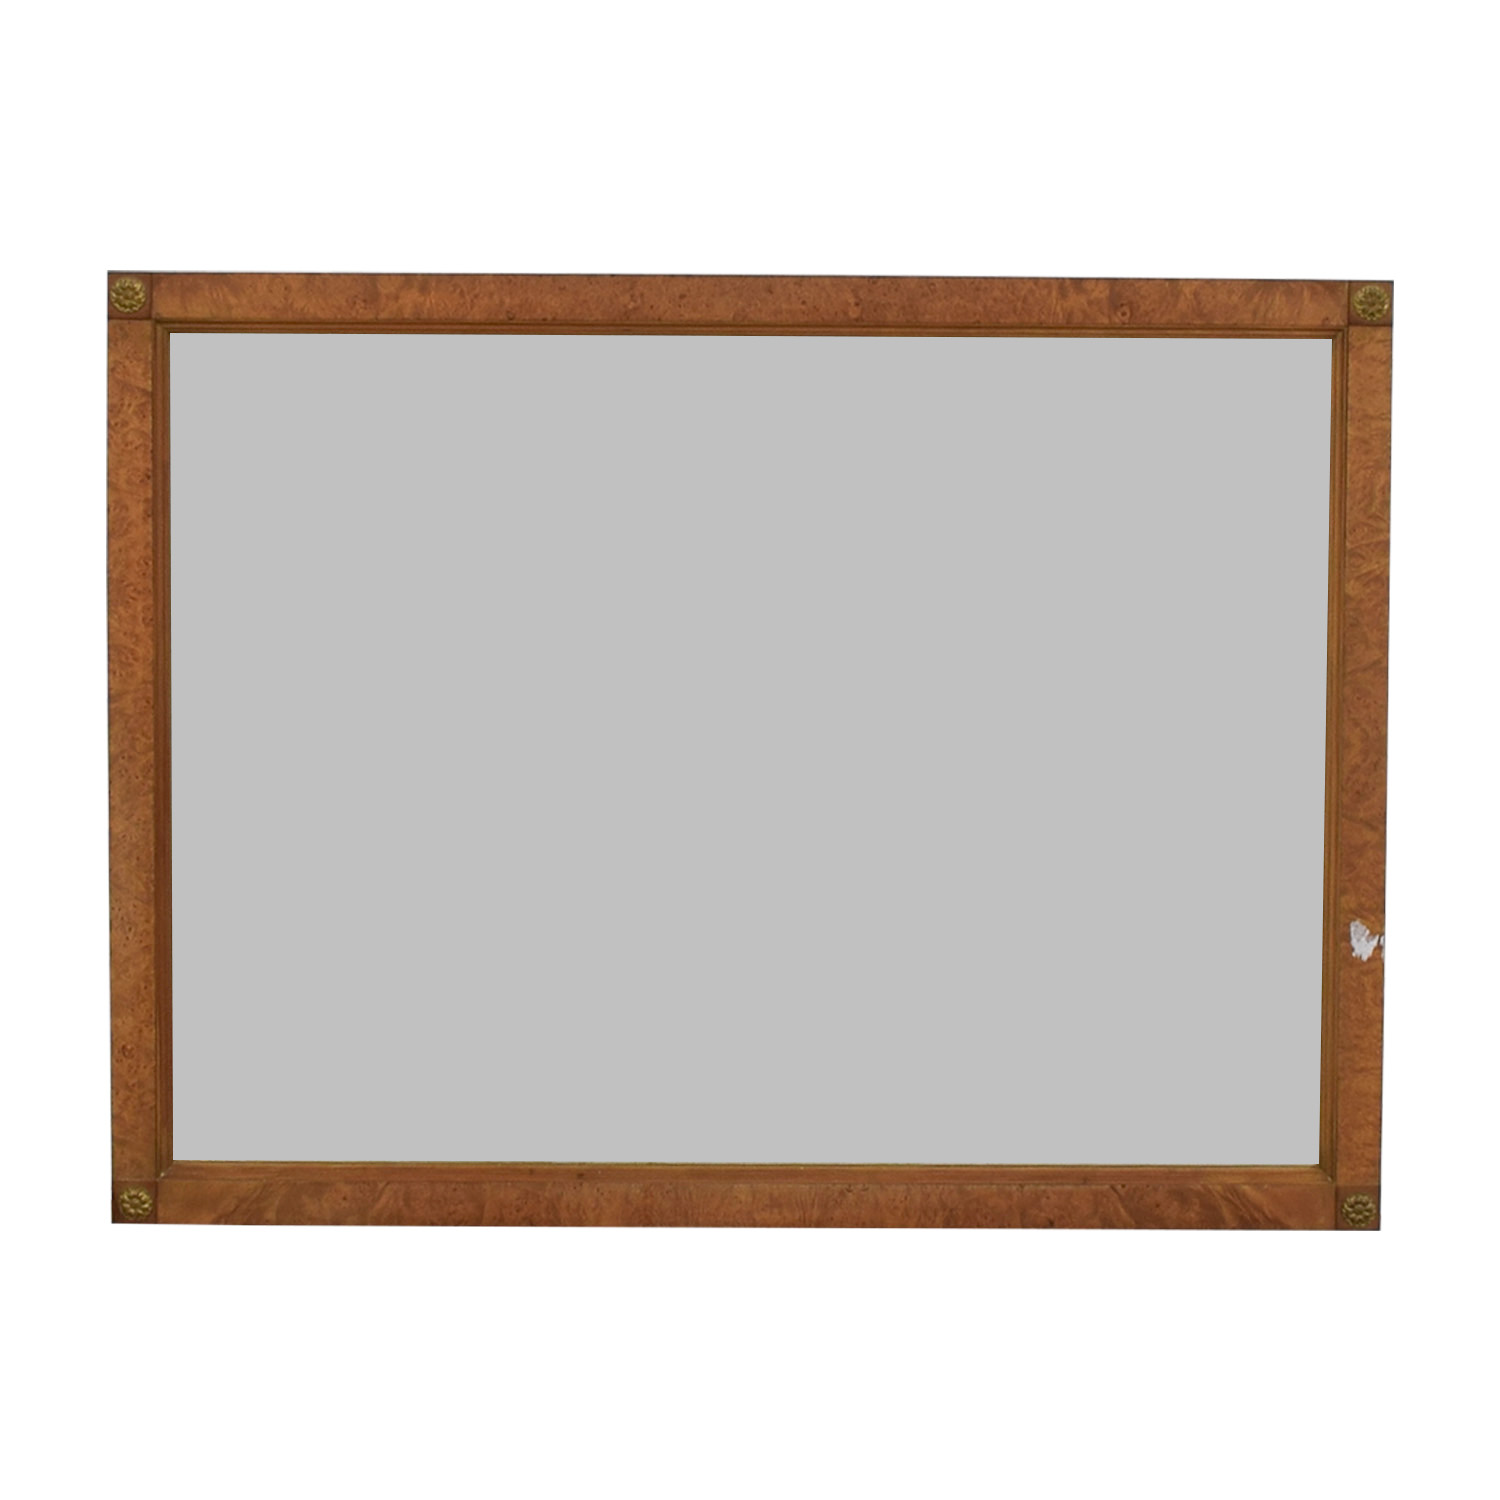 Carmel Frame with Medallion Corner Mirror nj